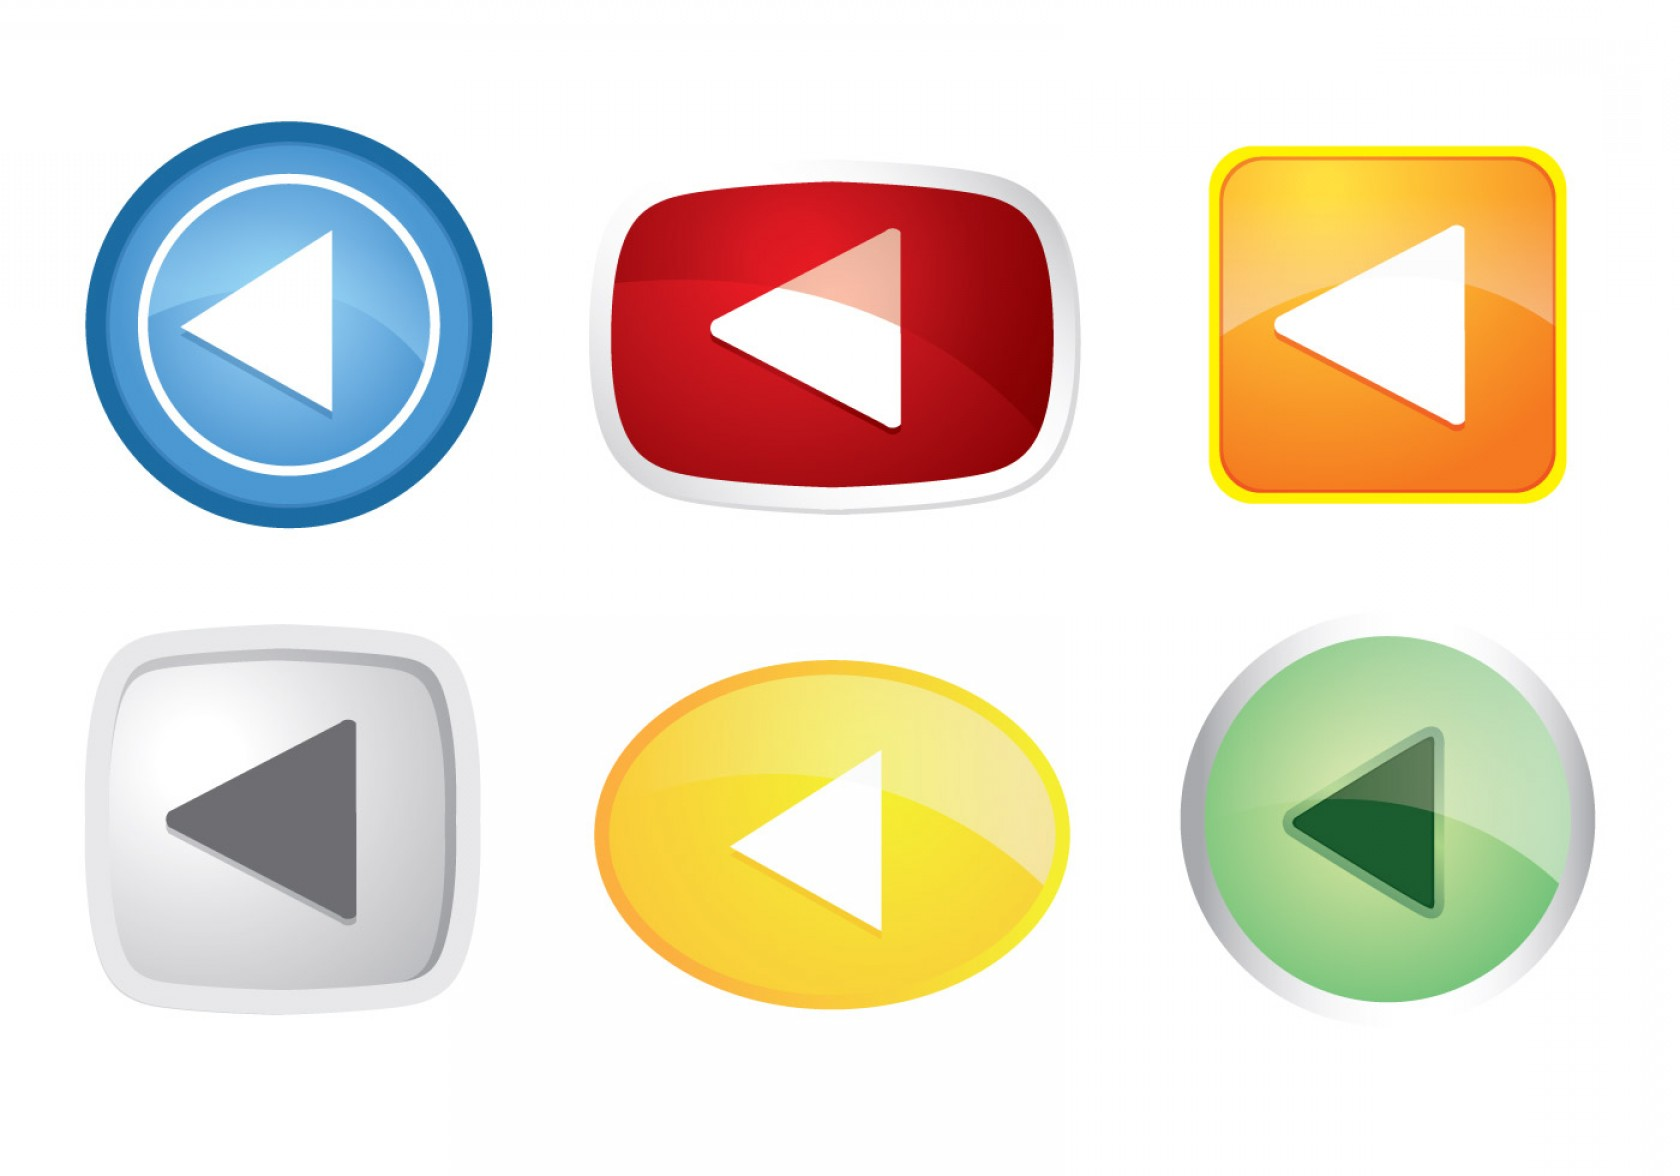 Buttons Vector Art: Colorful Play Button Icon Vectors